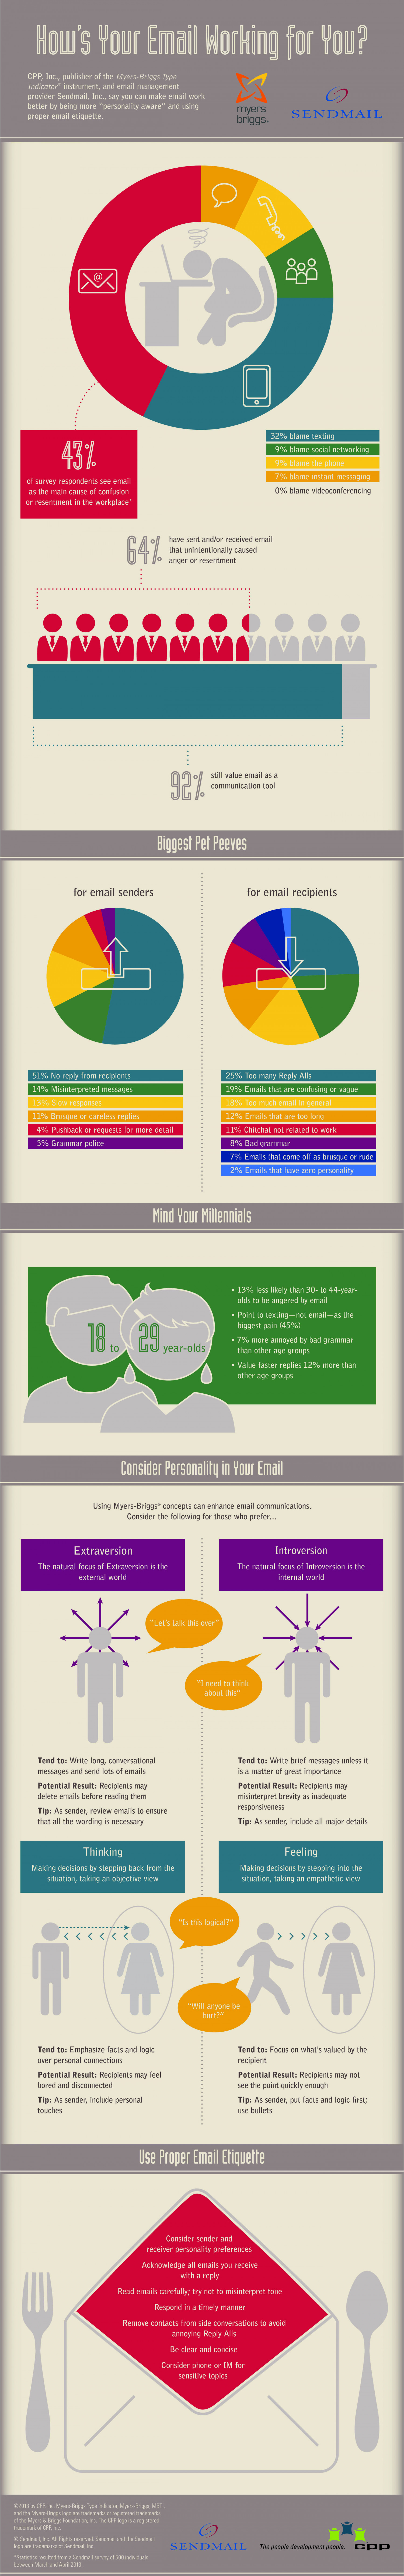 How's Your Email Working for You? Infographic